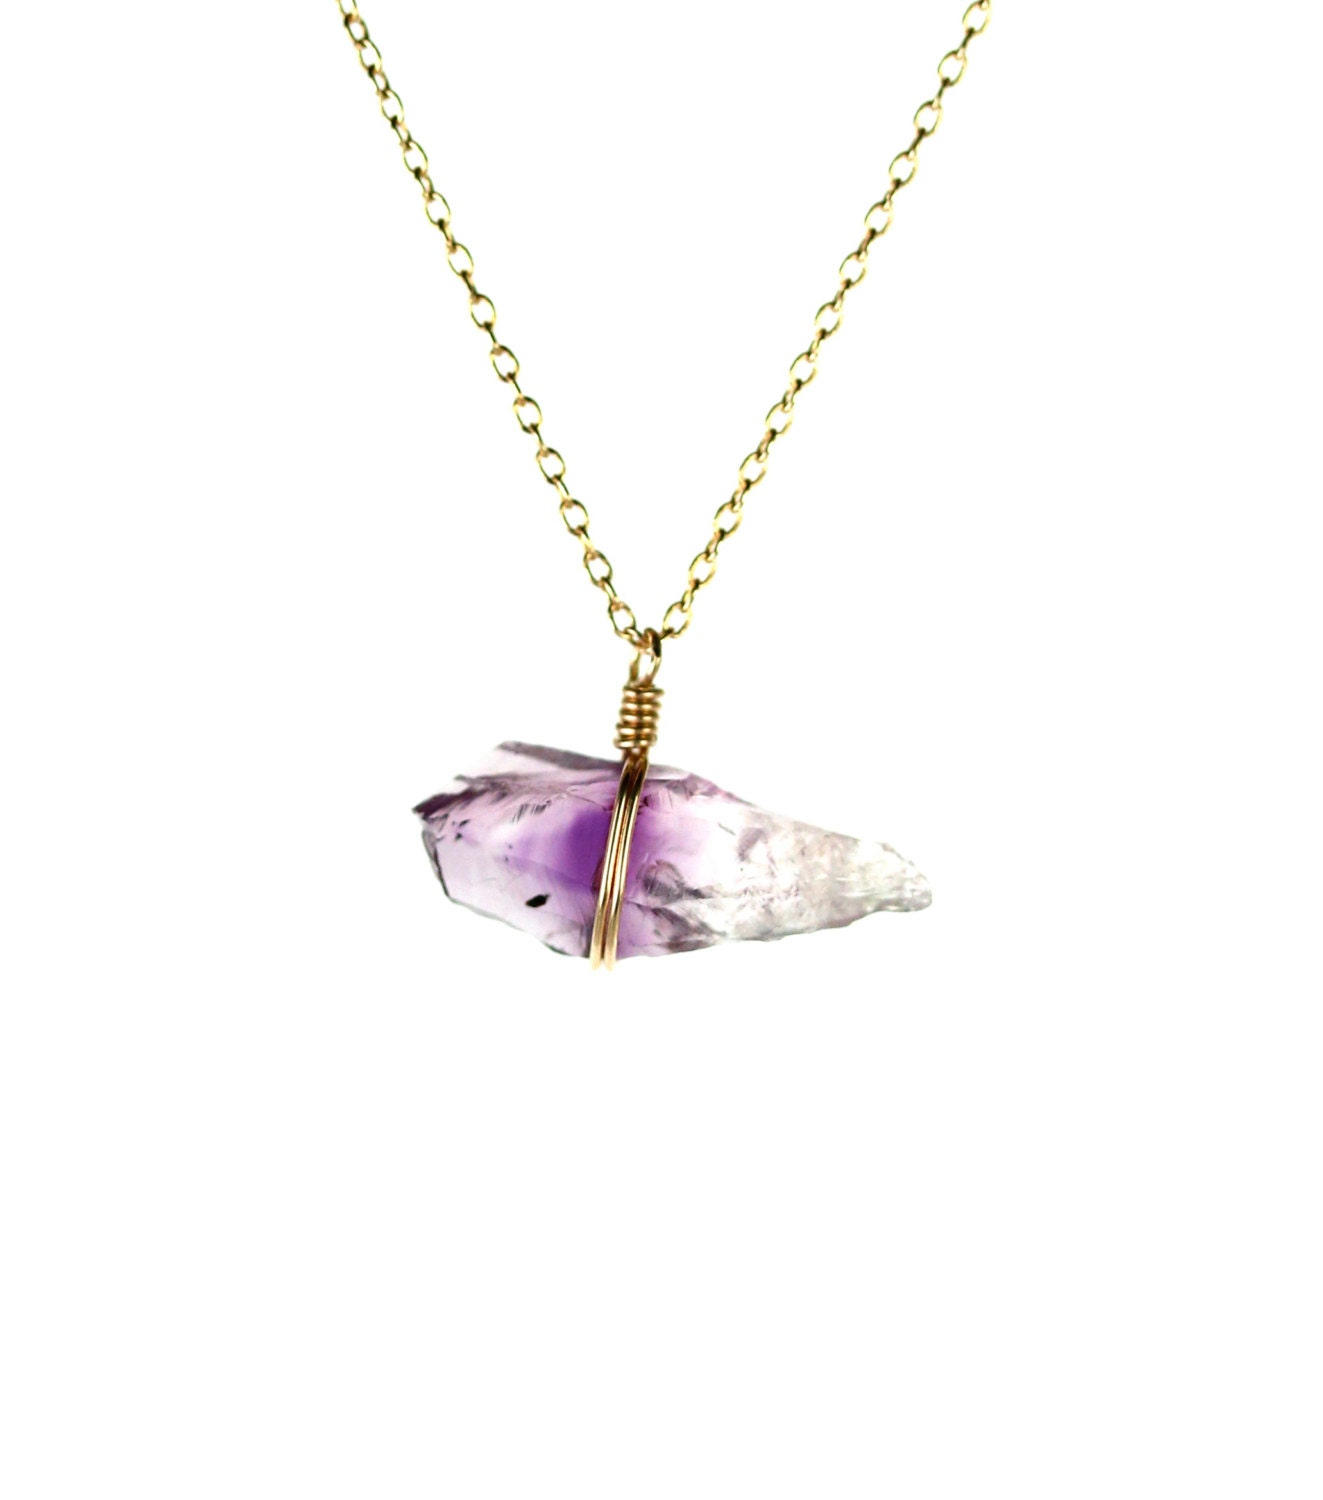 amethyst crystal necklace - photo #38